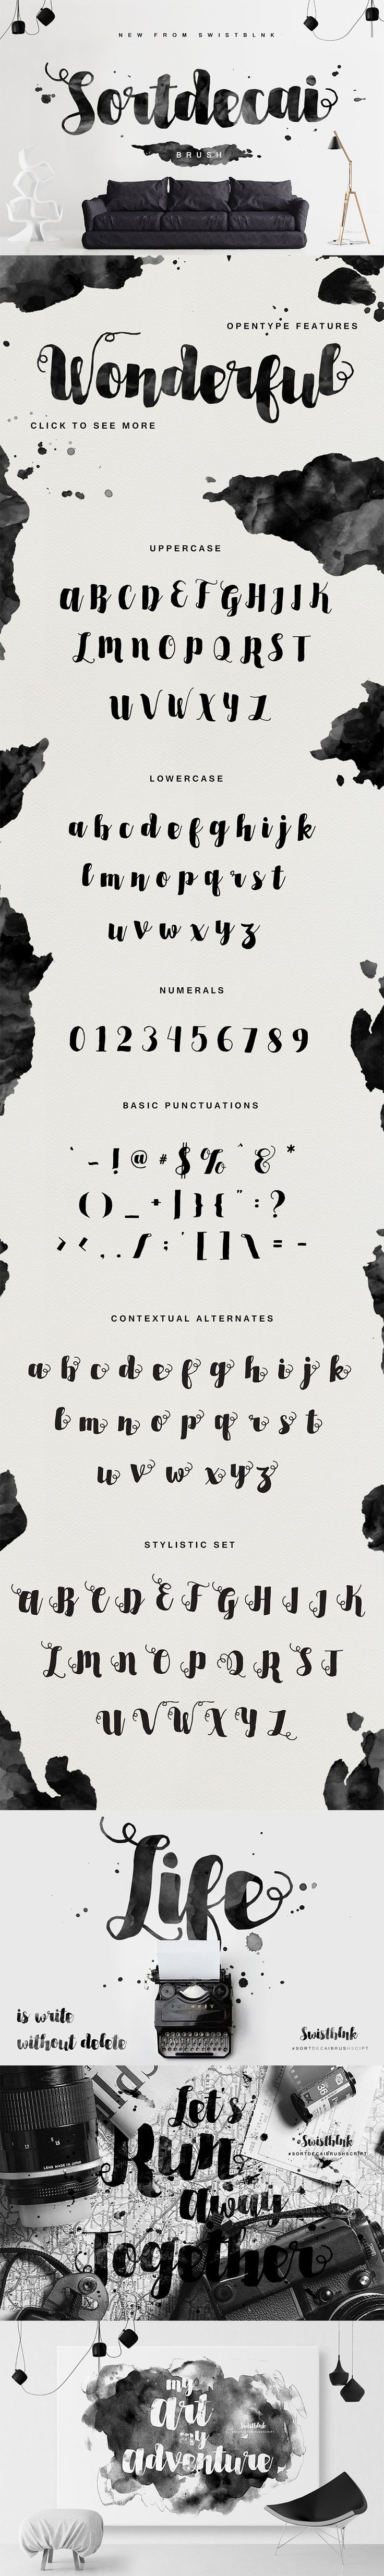 The Freakishly Huge Bundle of 40 Fonts and Bonus Vectors (Plus Web Fonts & Extended Licensing) - Only $39 | MyDesignDeals